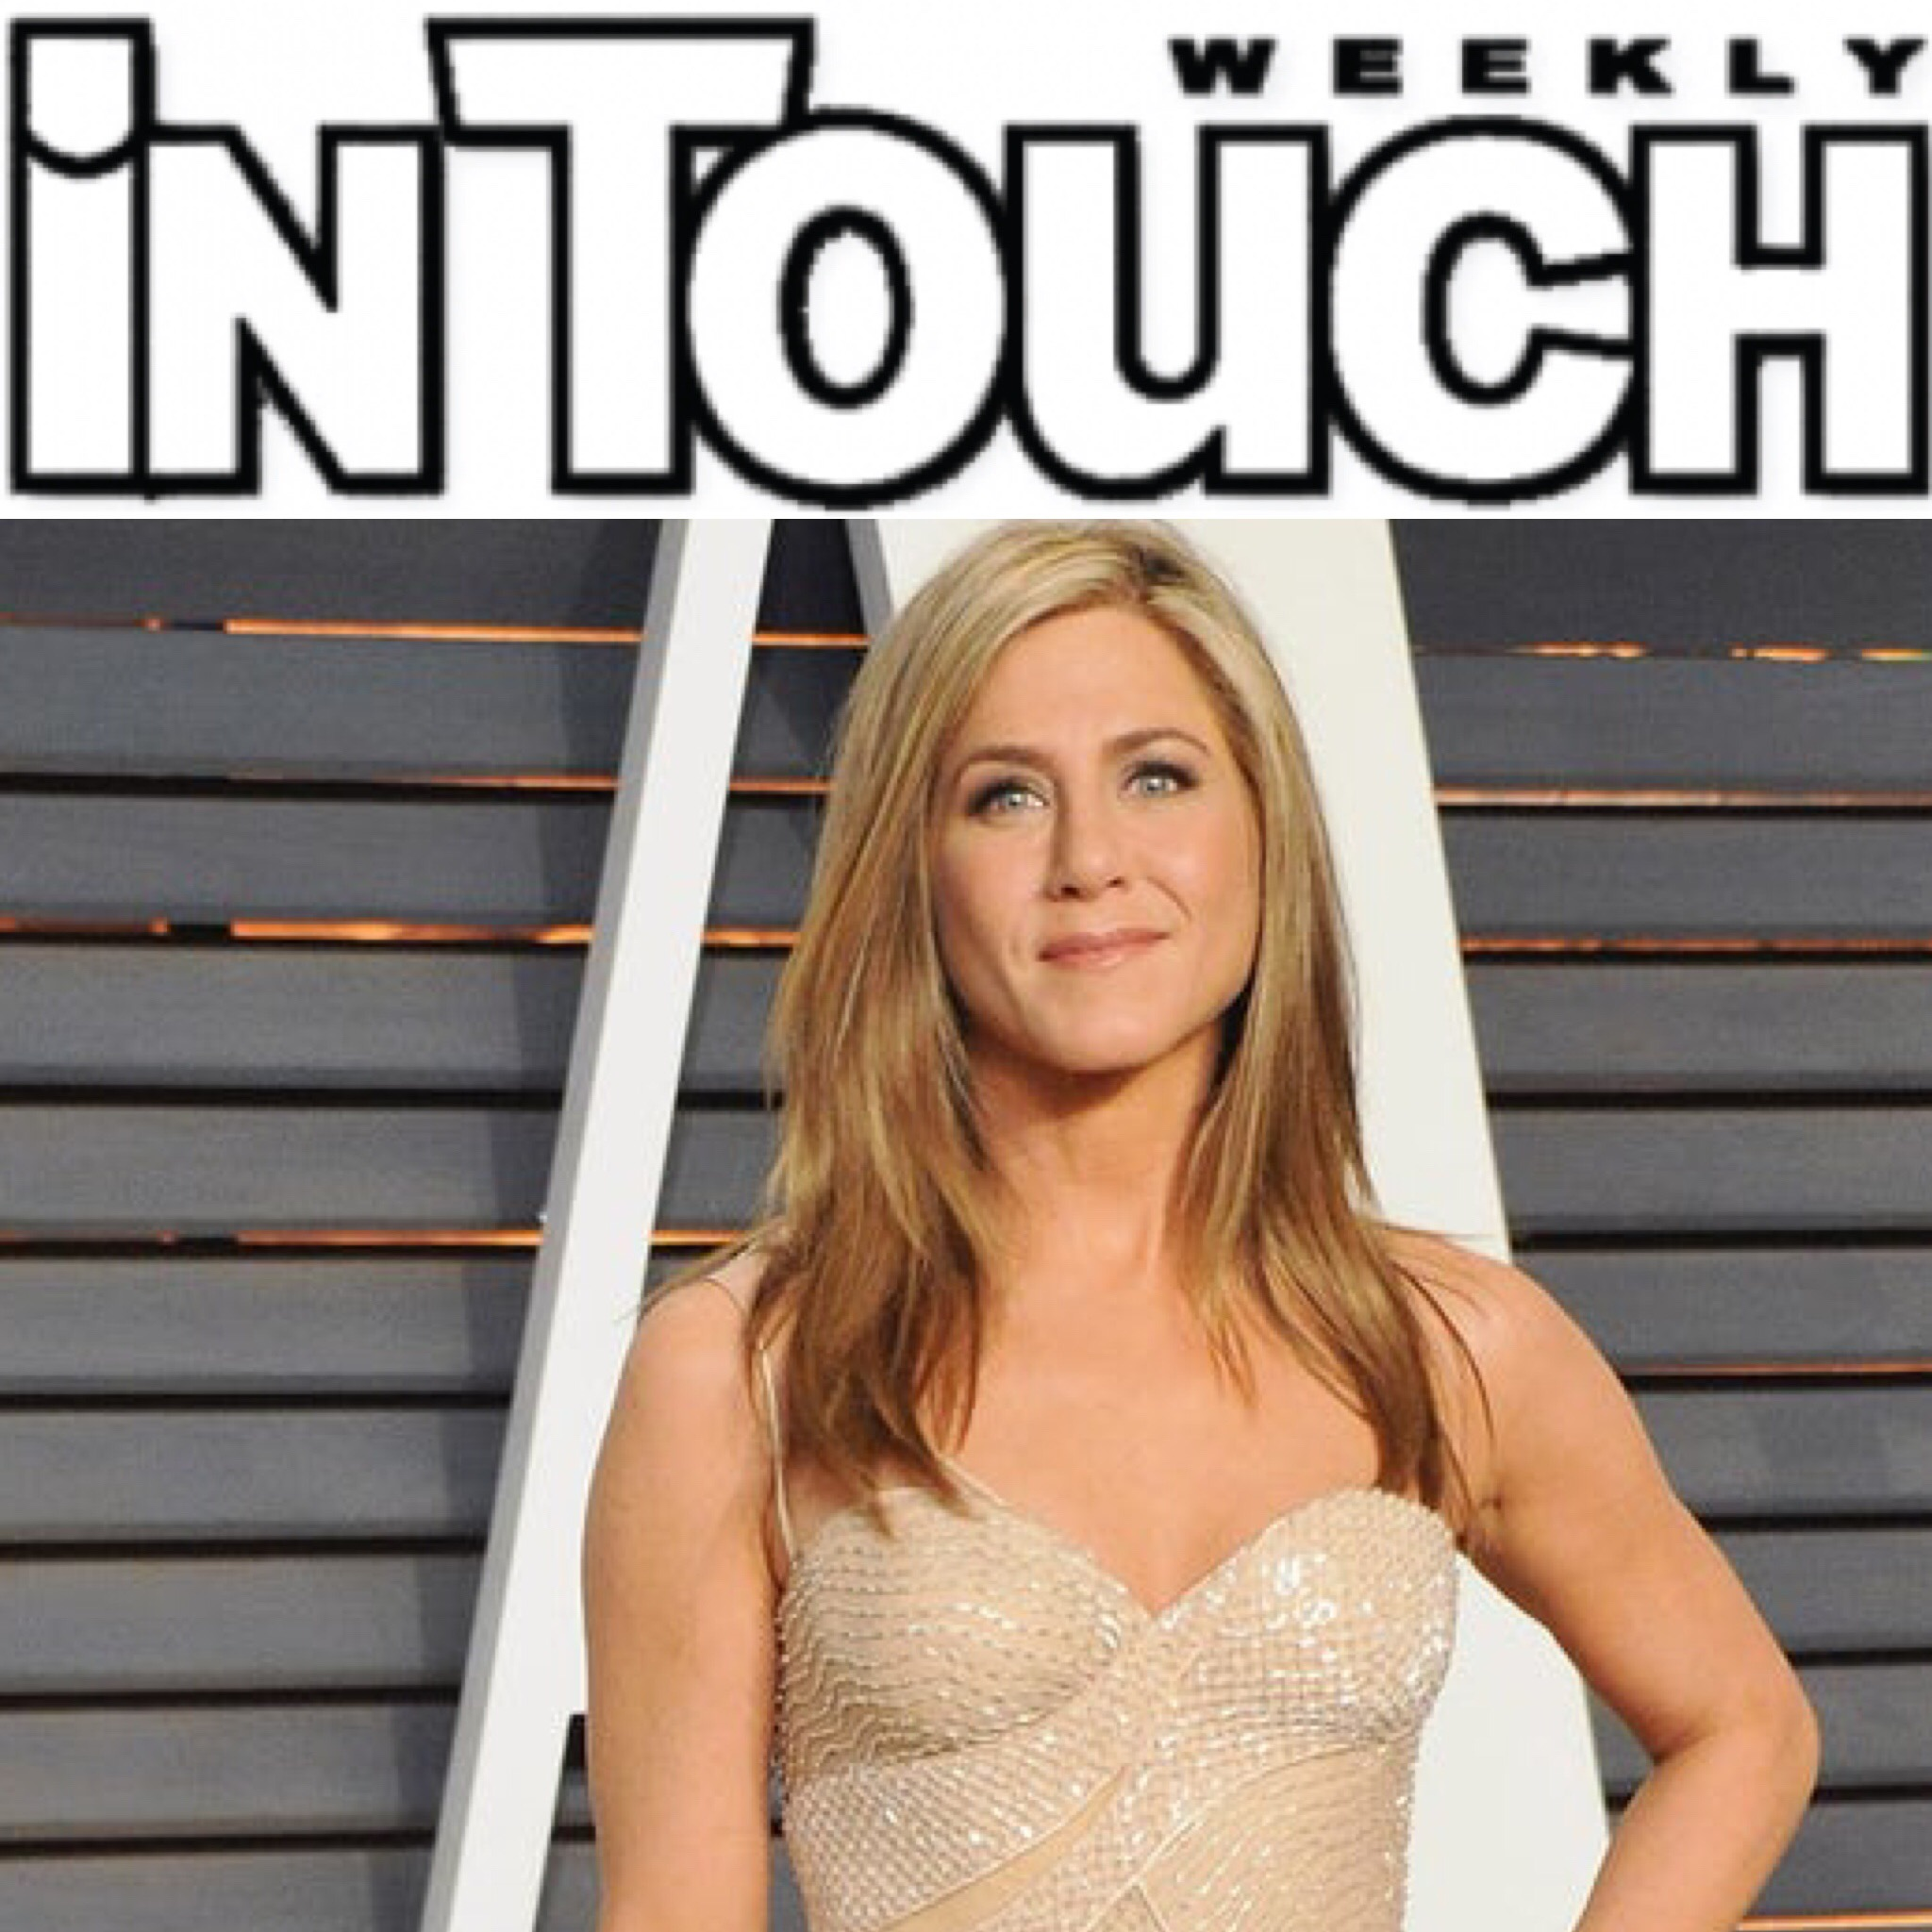 http://www.intouchweekly.com/posts/drunk-driver-rams-into-jennifer-aniston-s-front-yard-53860